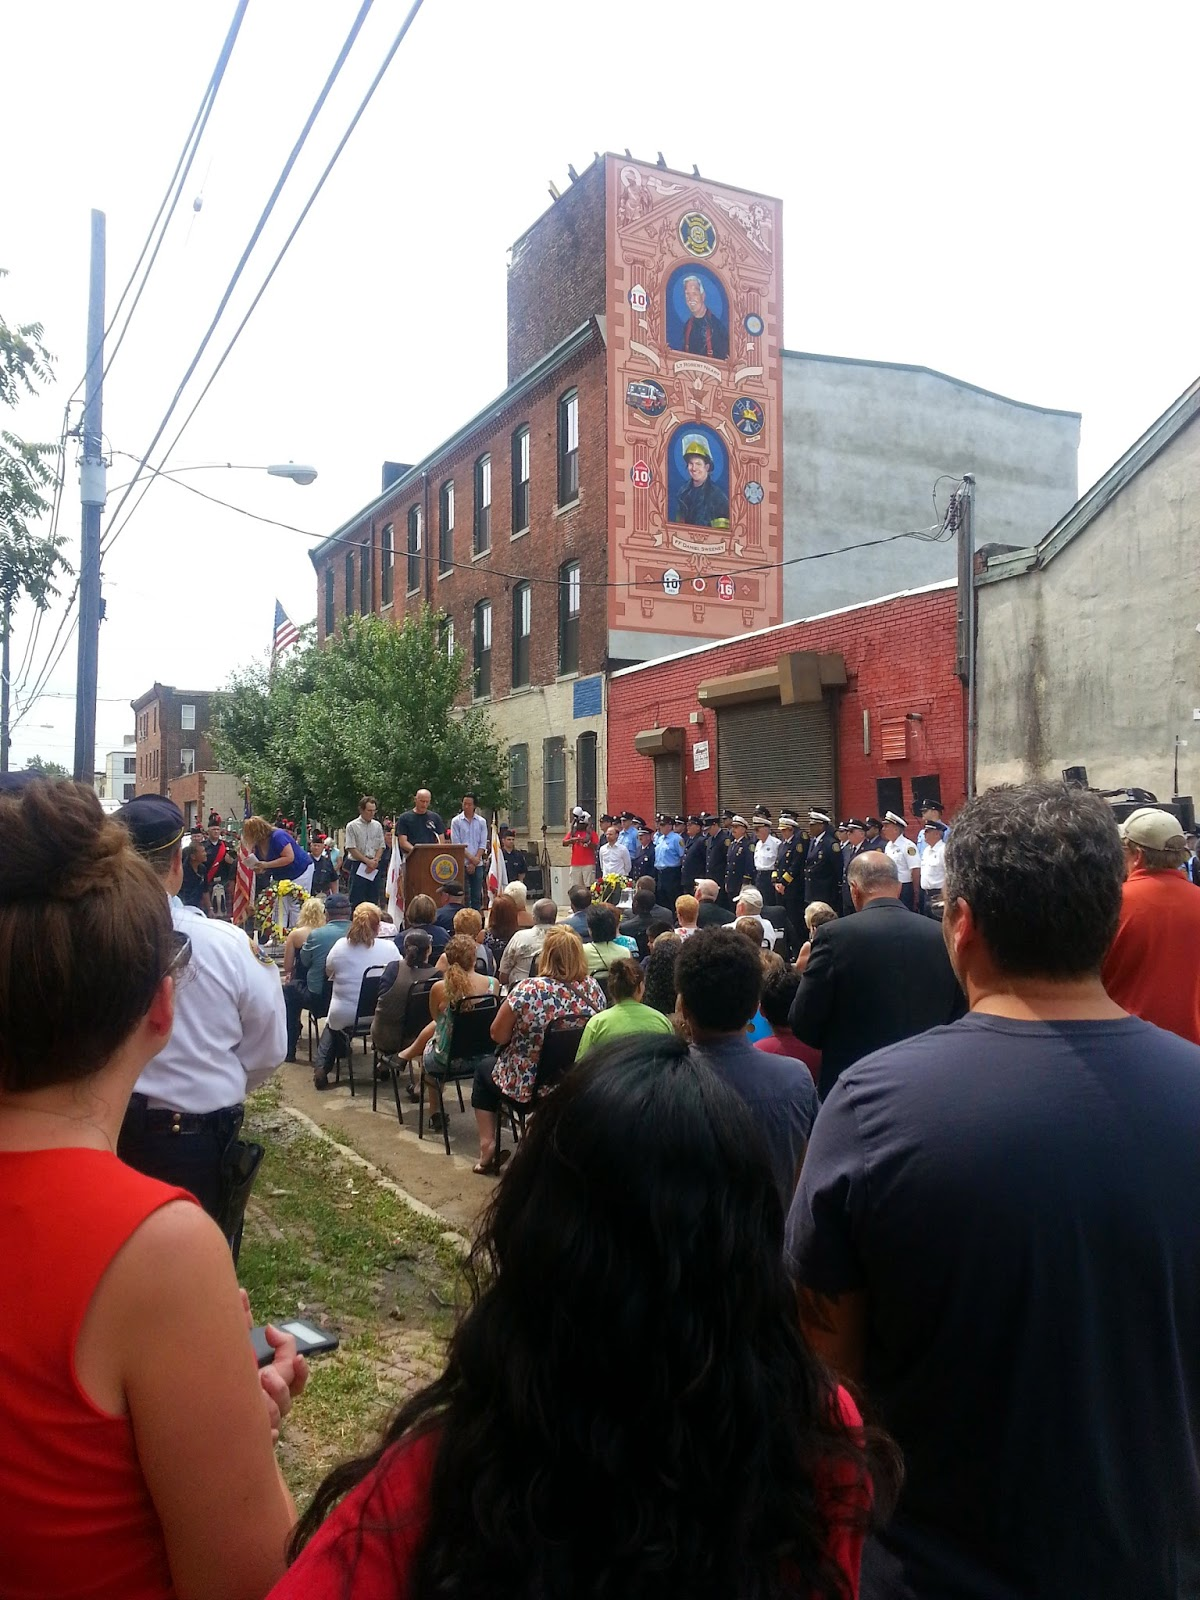 Silver's Travels: A mural dedication today in Philadelphia